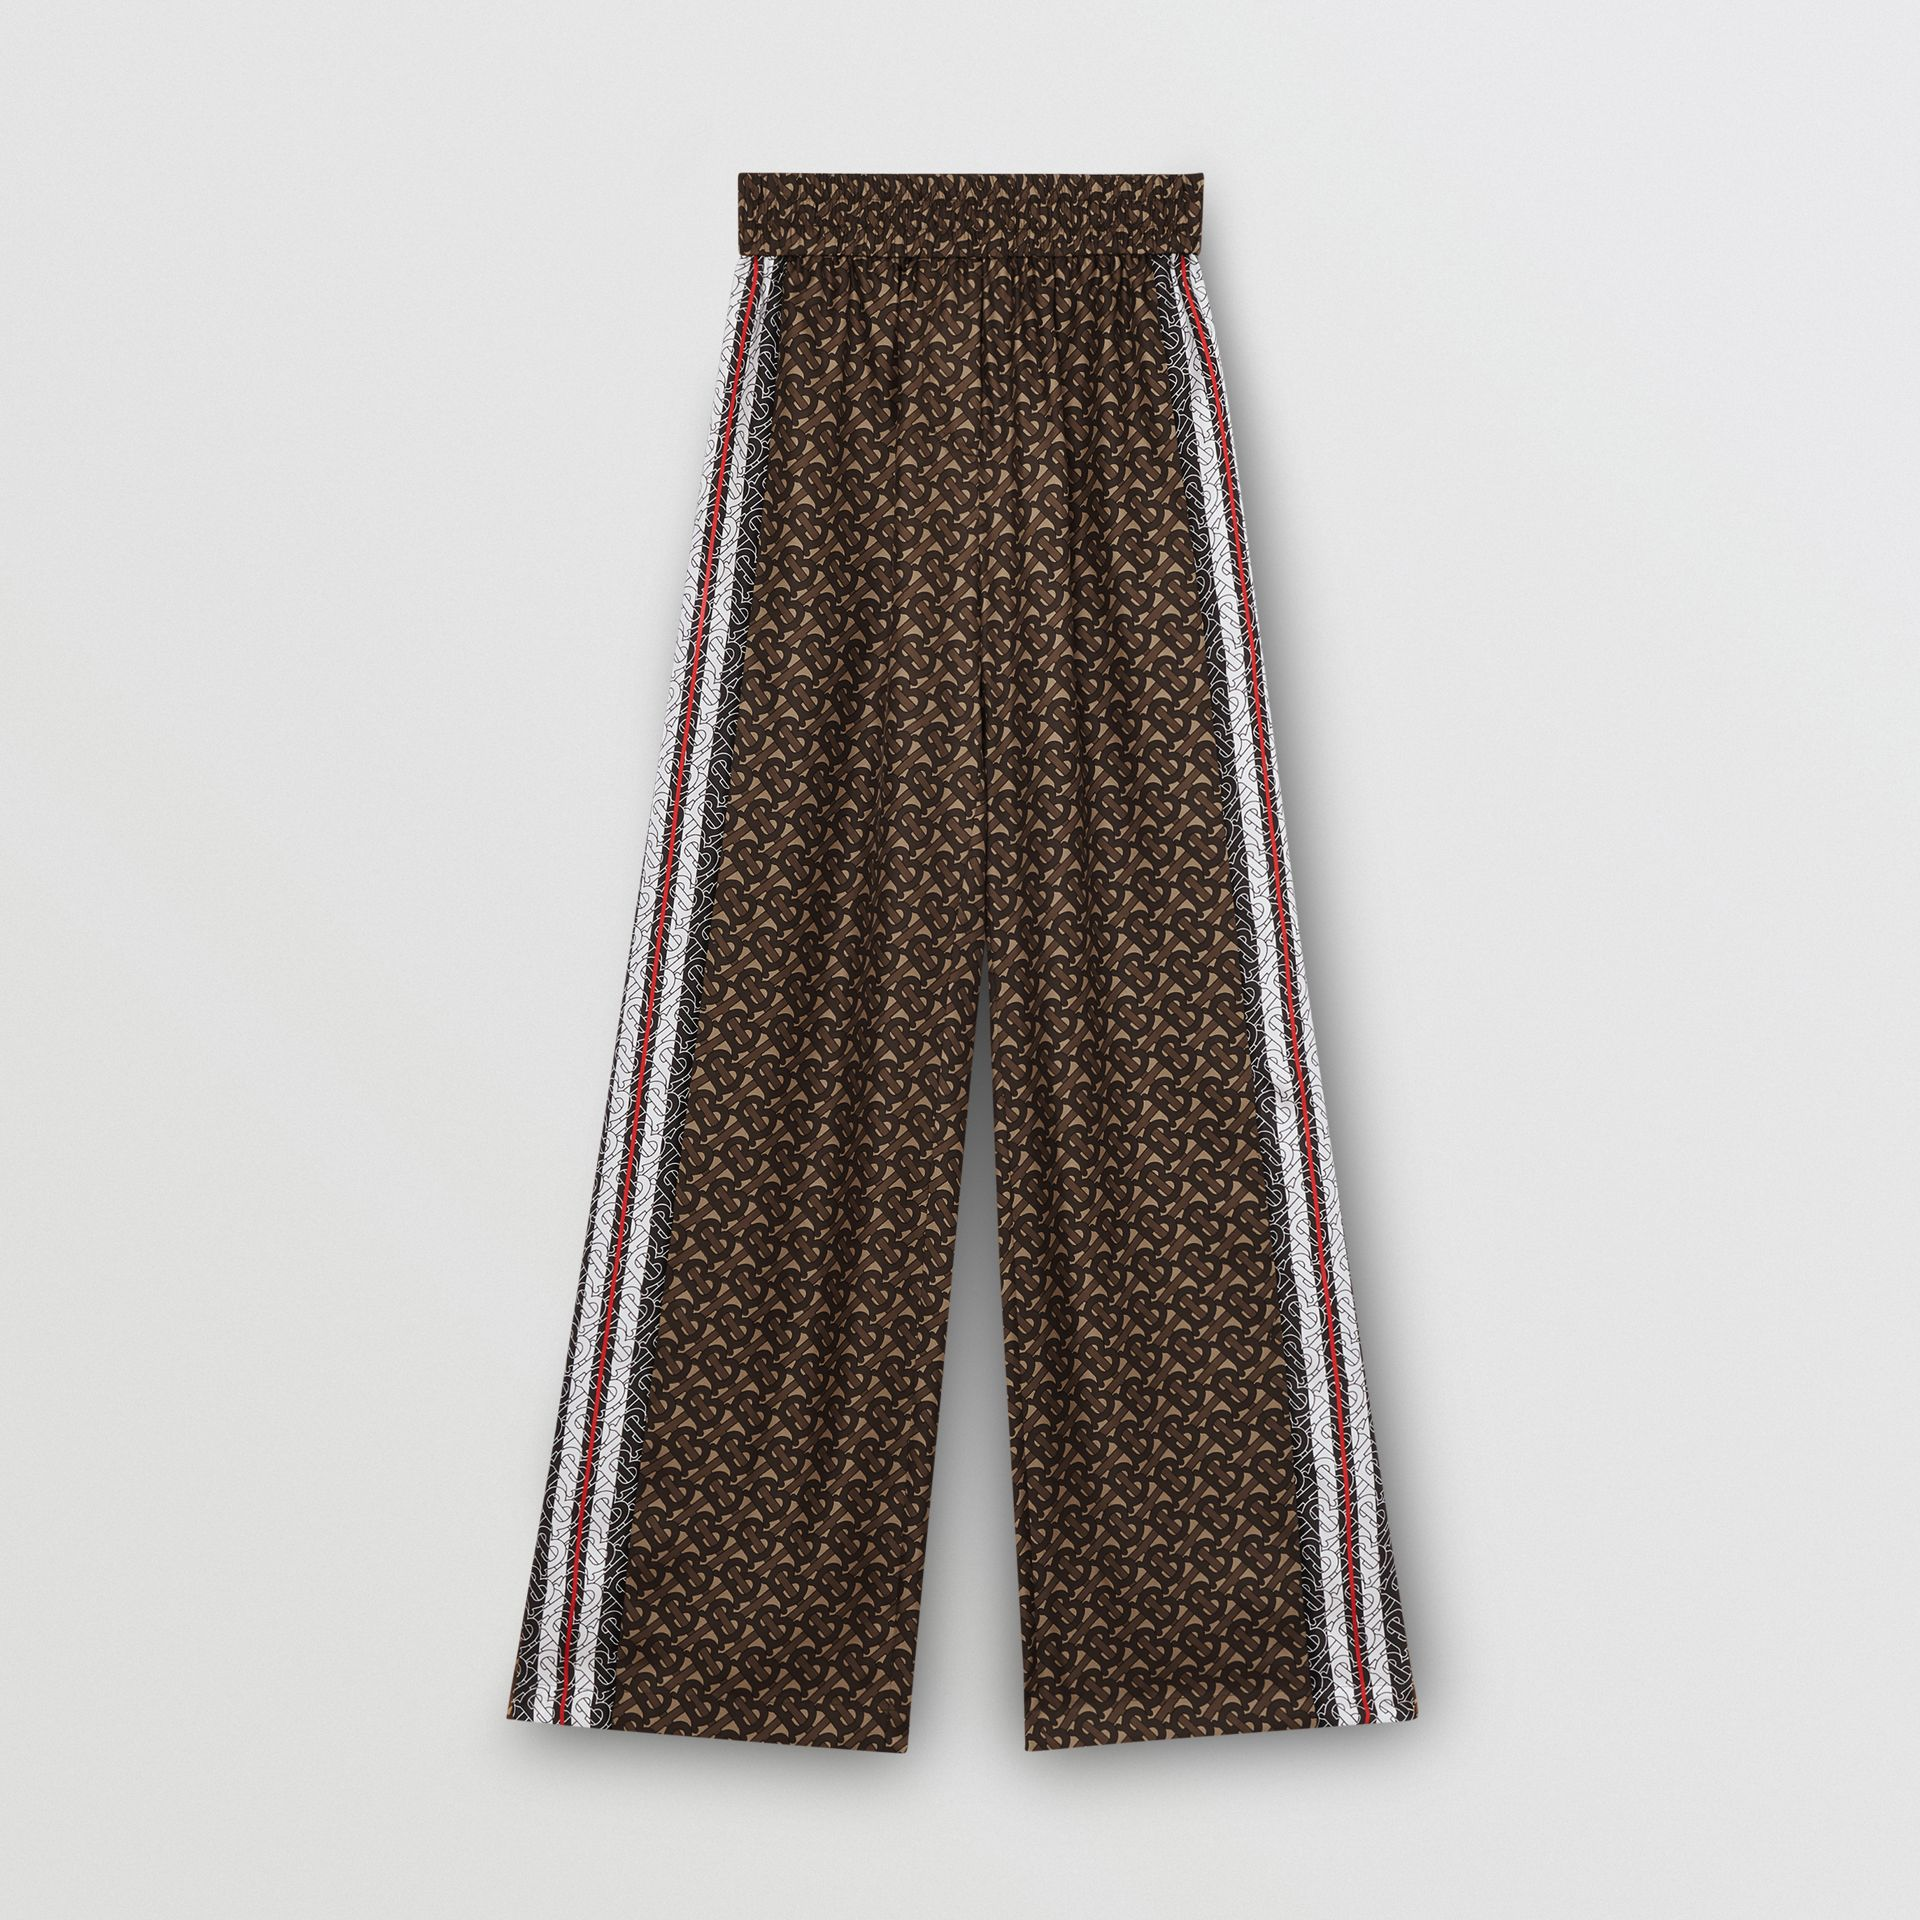 Monogram Stripe Print Silk Trousers in Bridle Brown - Women | Burberry United Kingdom - gallery image 3